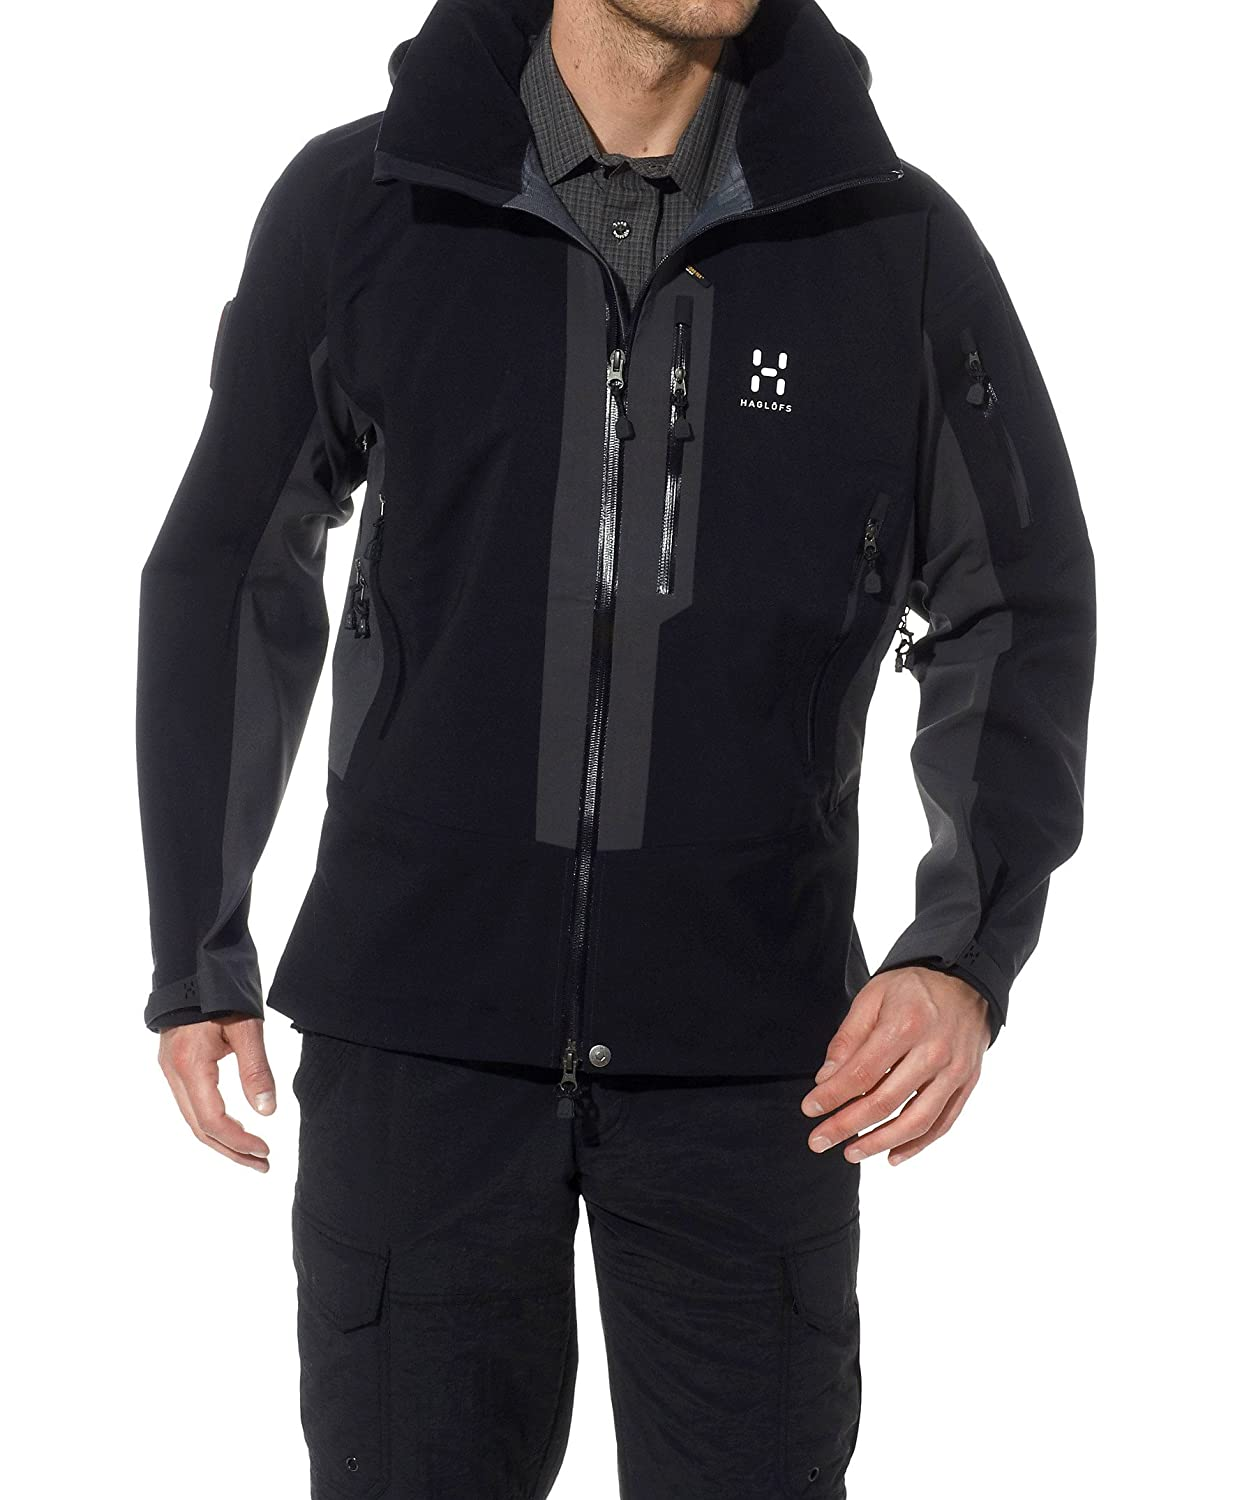 HAGLÖFS COULOIR JACKET GORE-TEX® STRETCH SOFT SHELL online bestellen